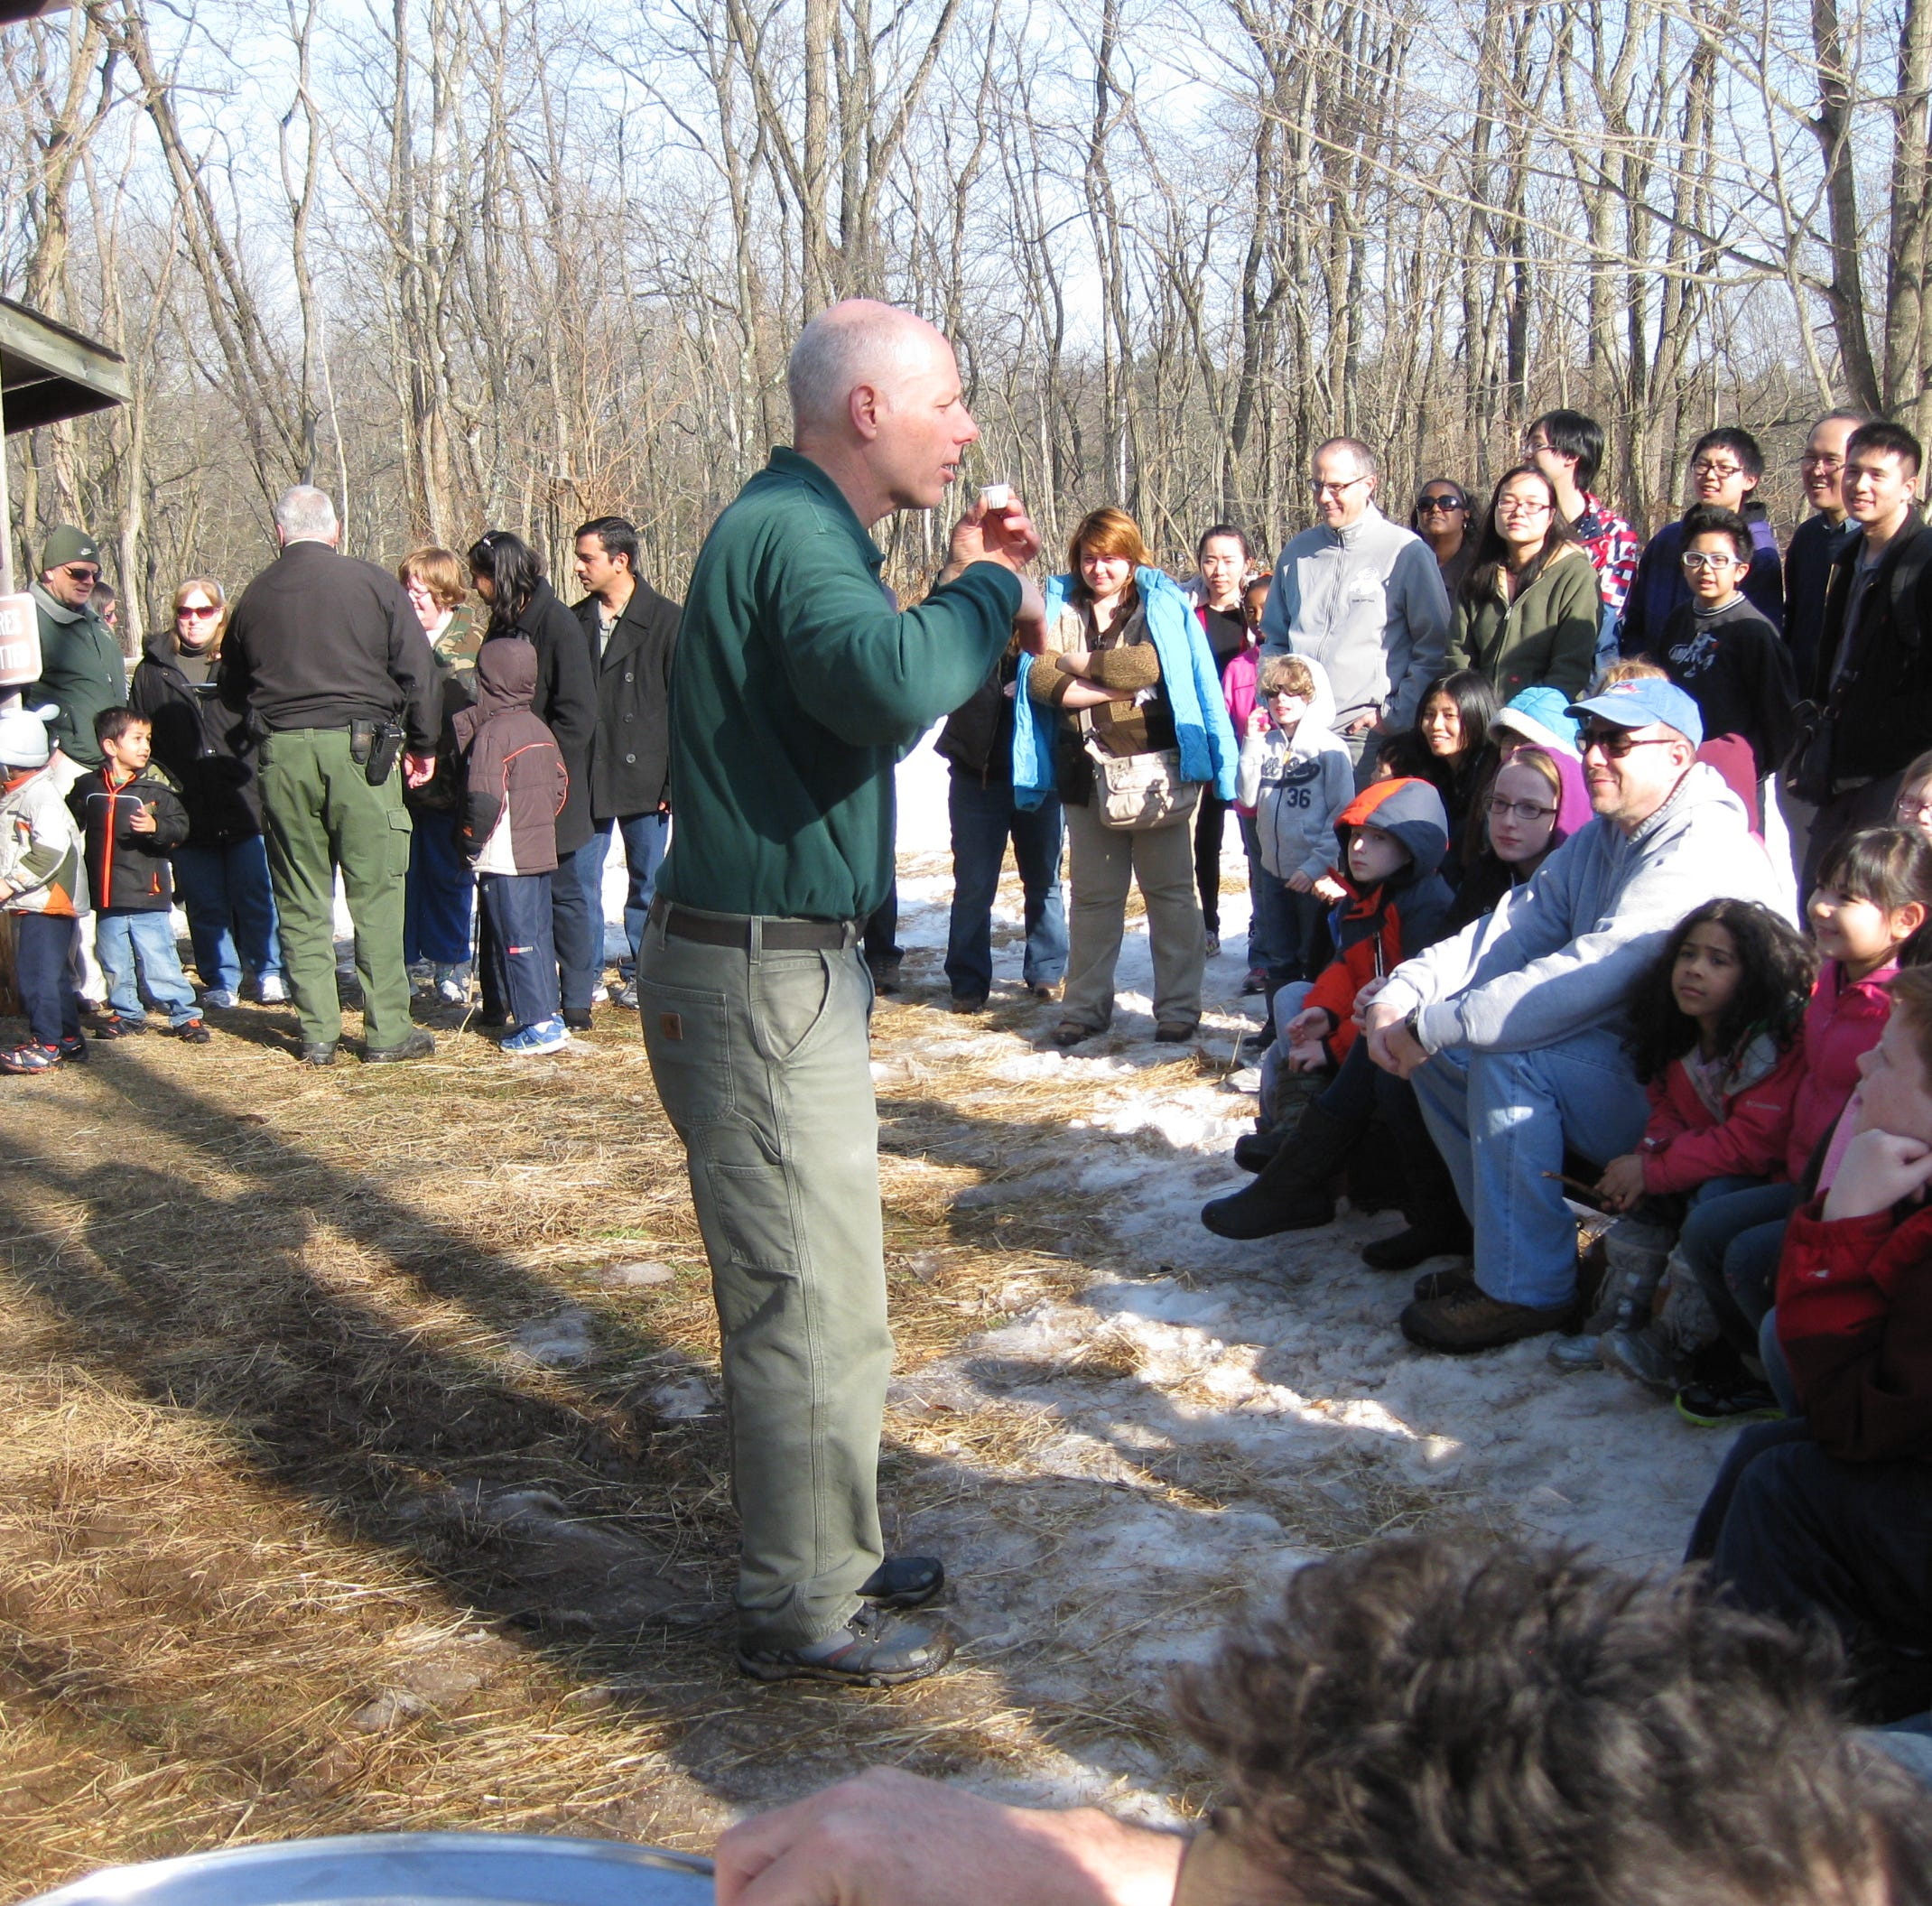 It's maple sugaring season at Somerset County Parks' Environmental Education Center